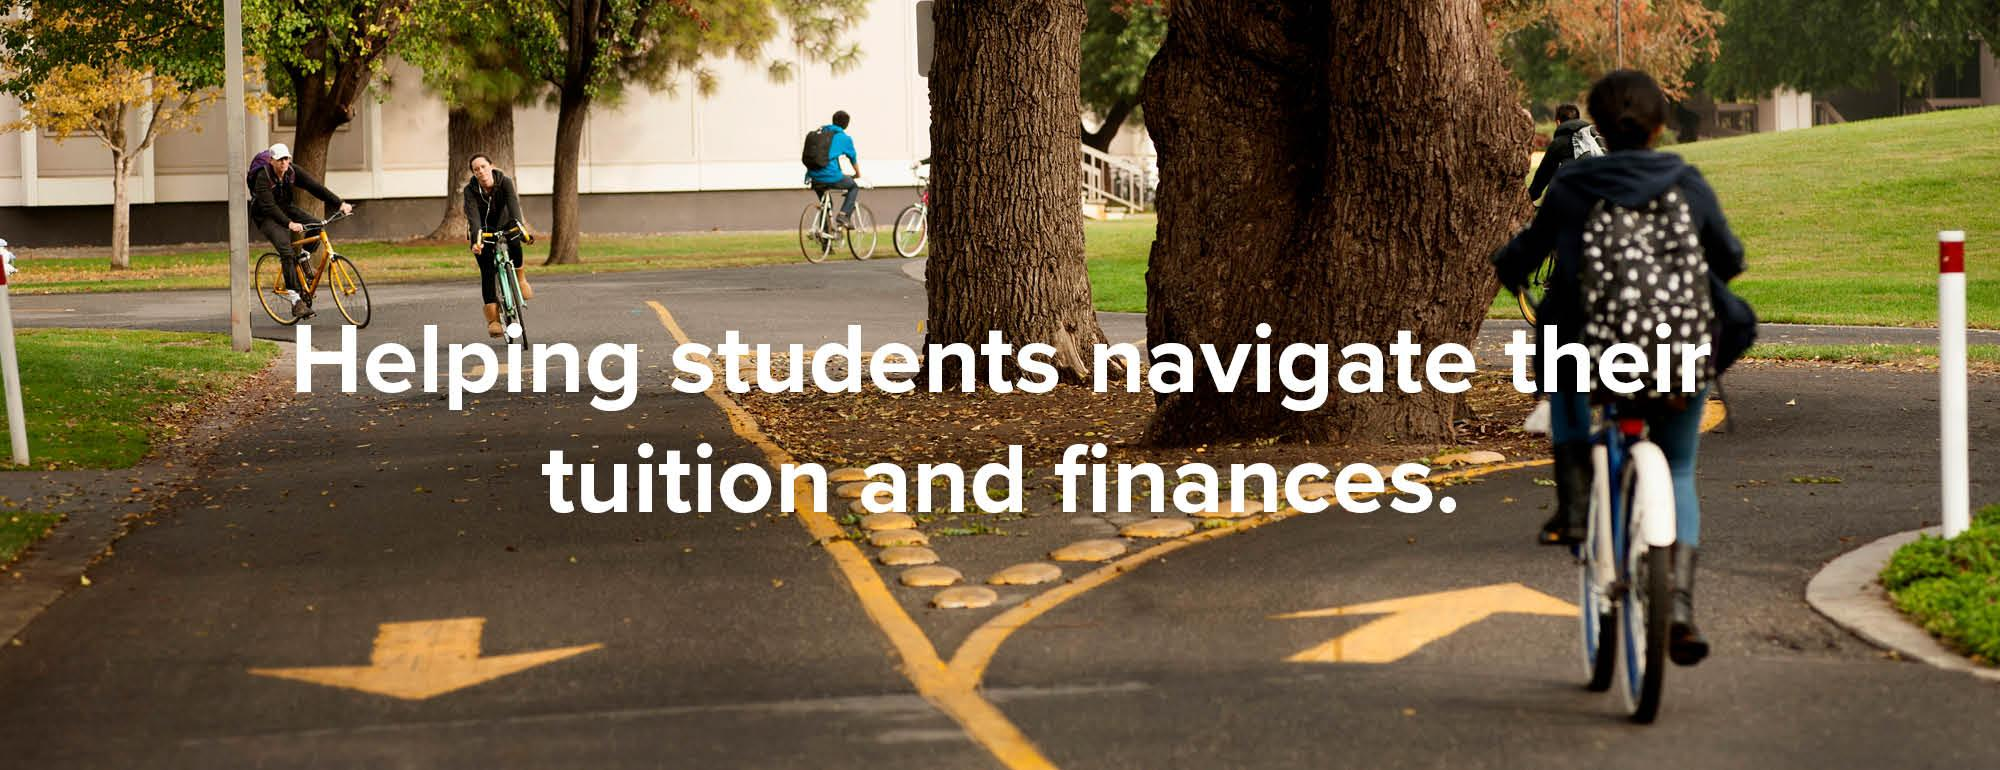 Students on two-directional bike path